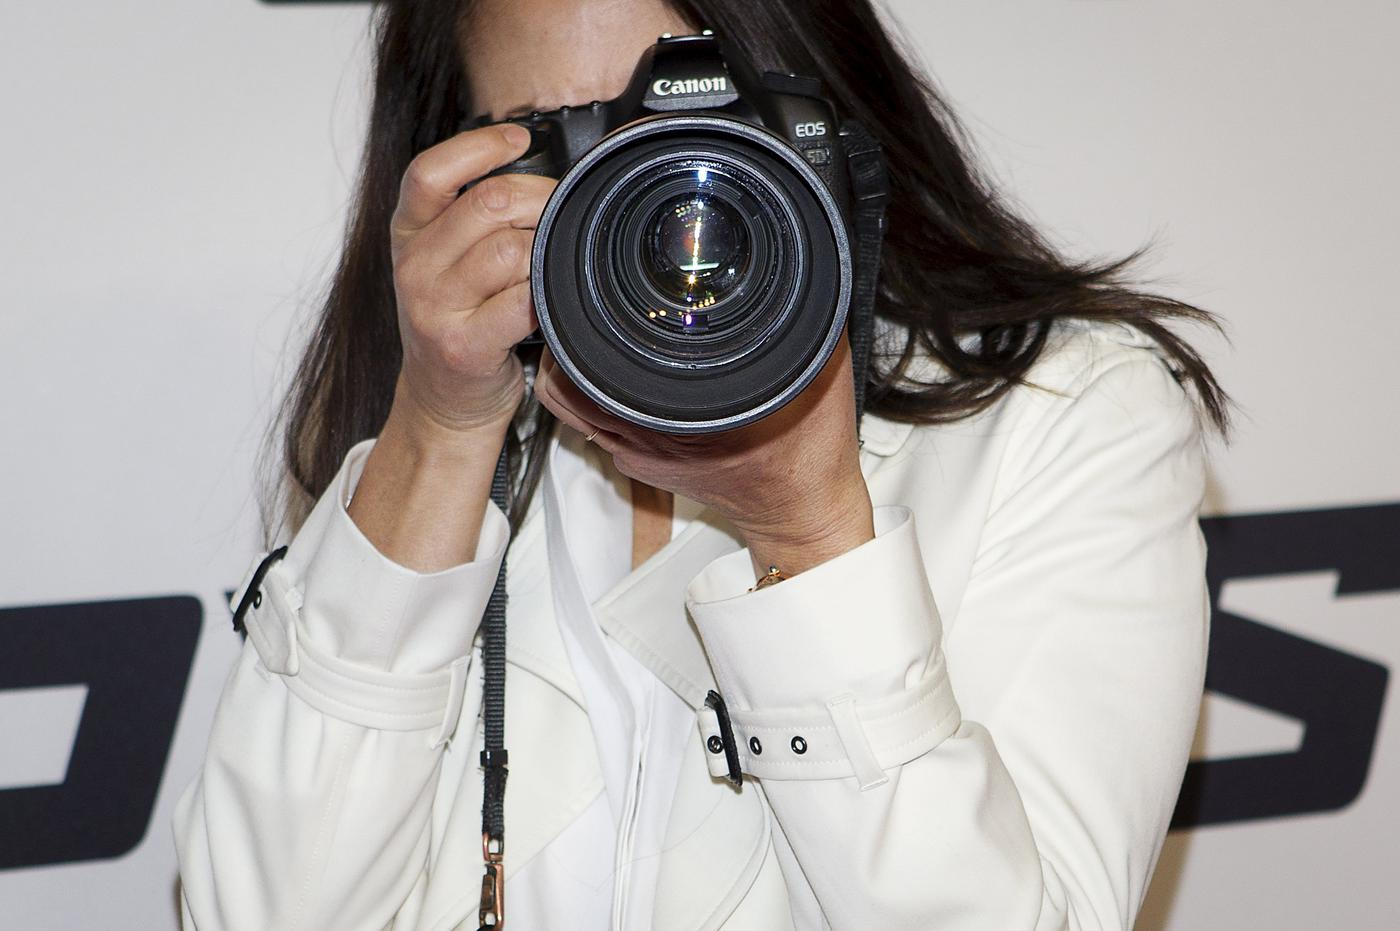 23 things I wish I'd known before becoming a photographer